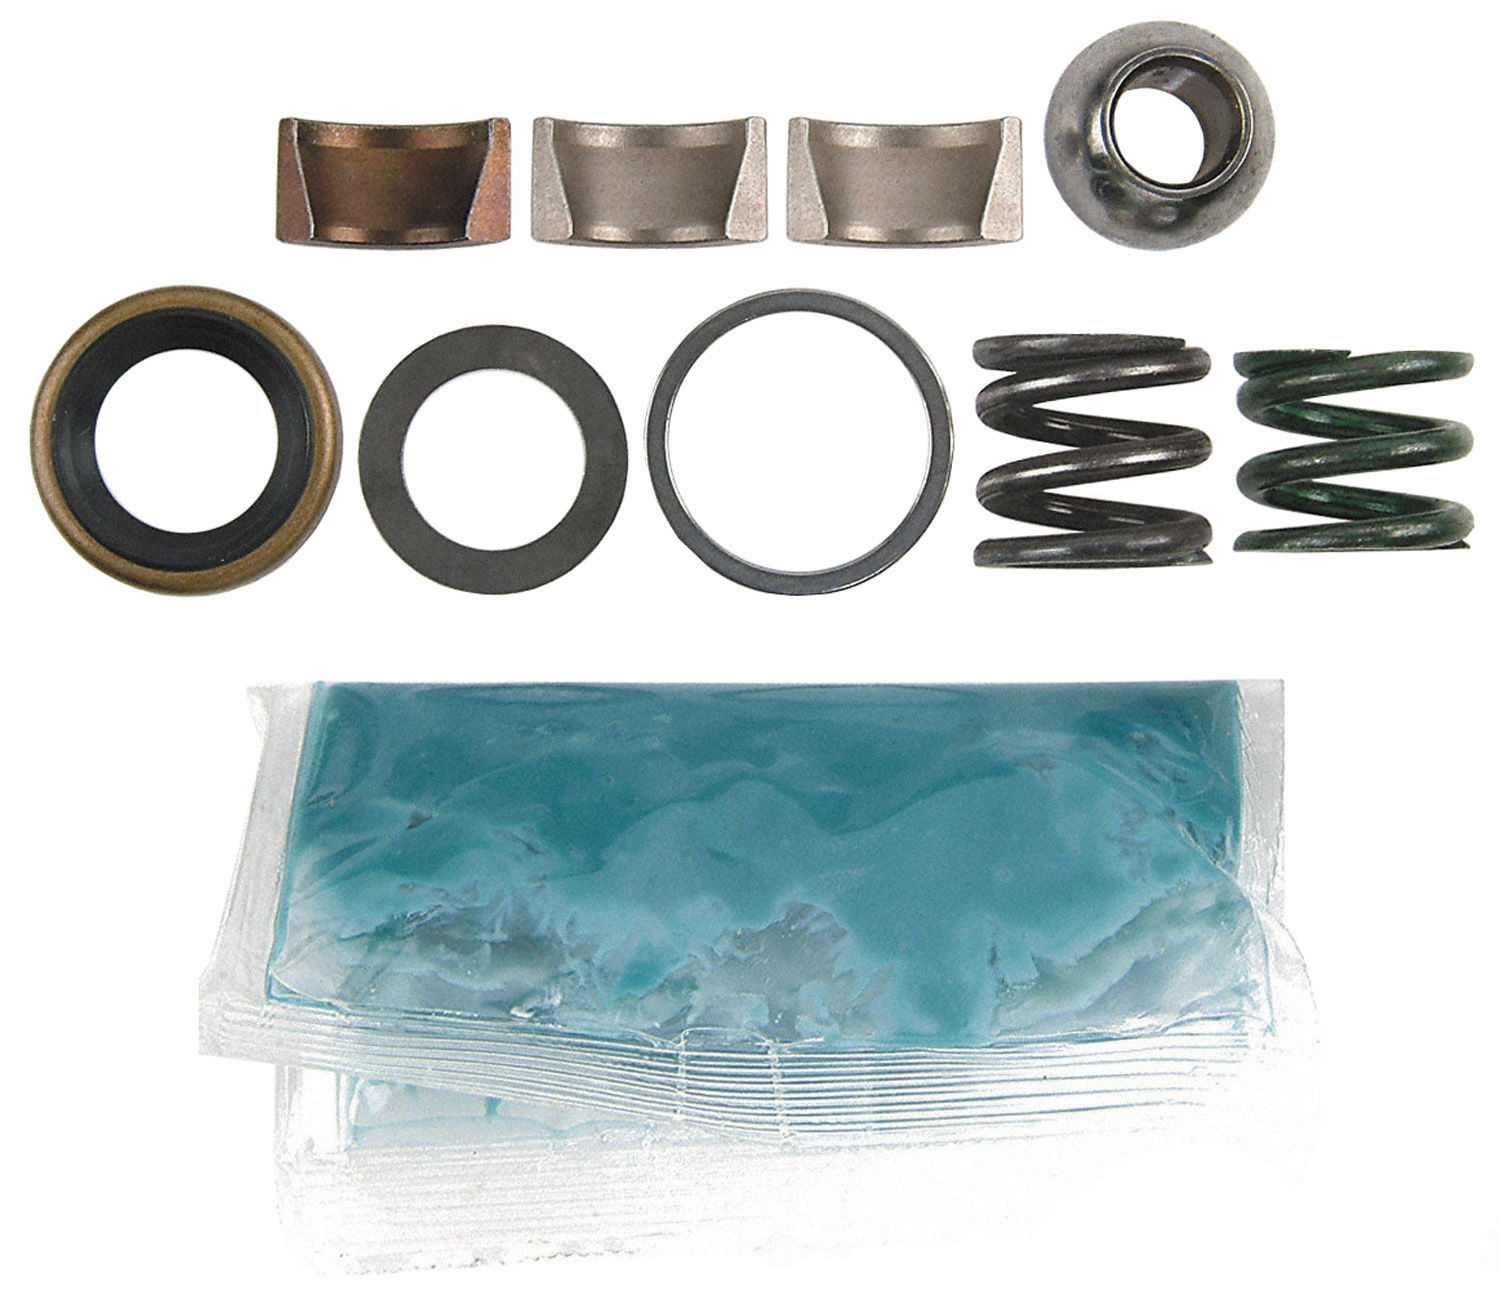 ACDELCO PROFESSIONAL - Propshaft Joint Ball Seat Kit - DCC 45U0750